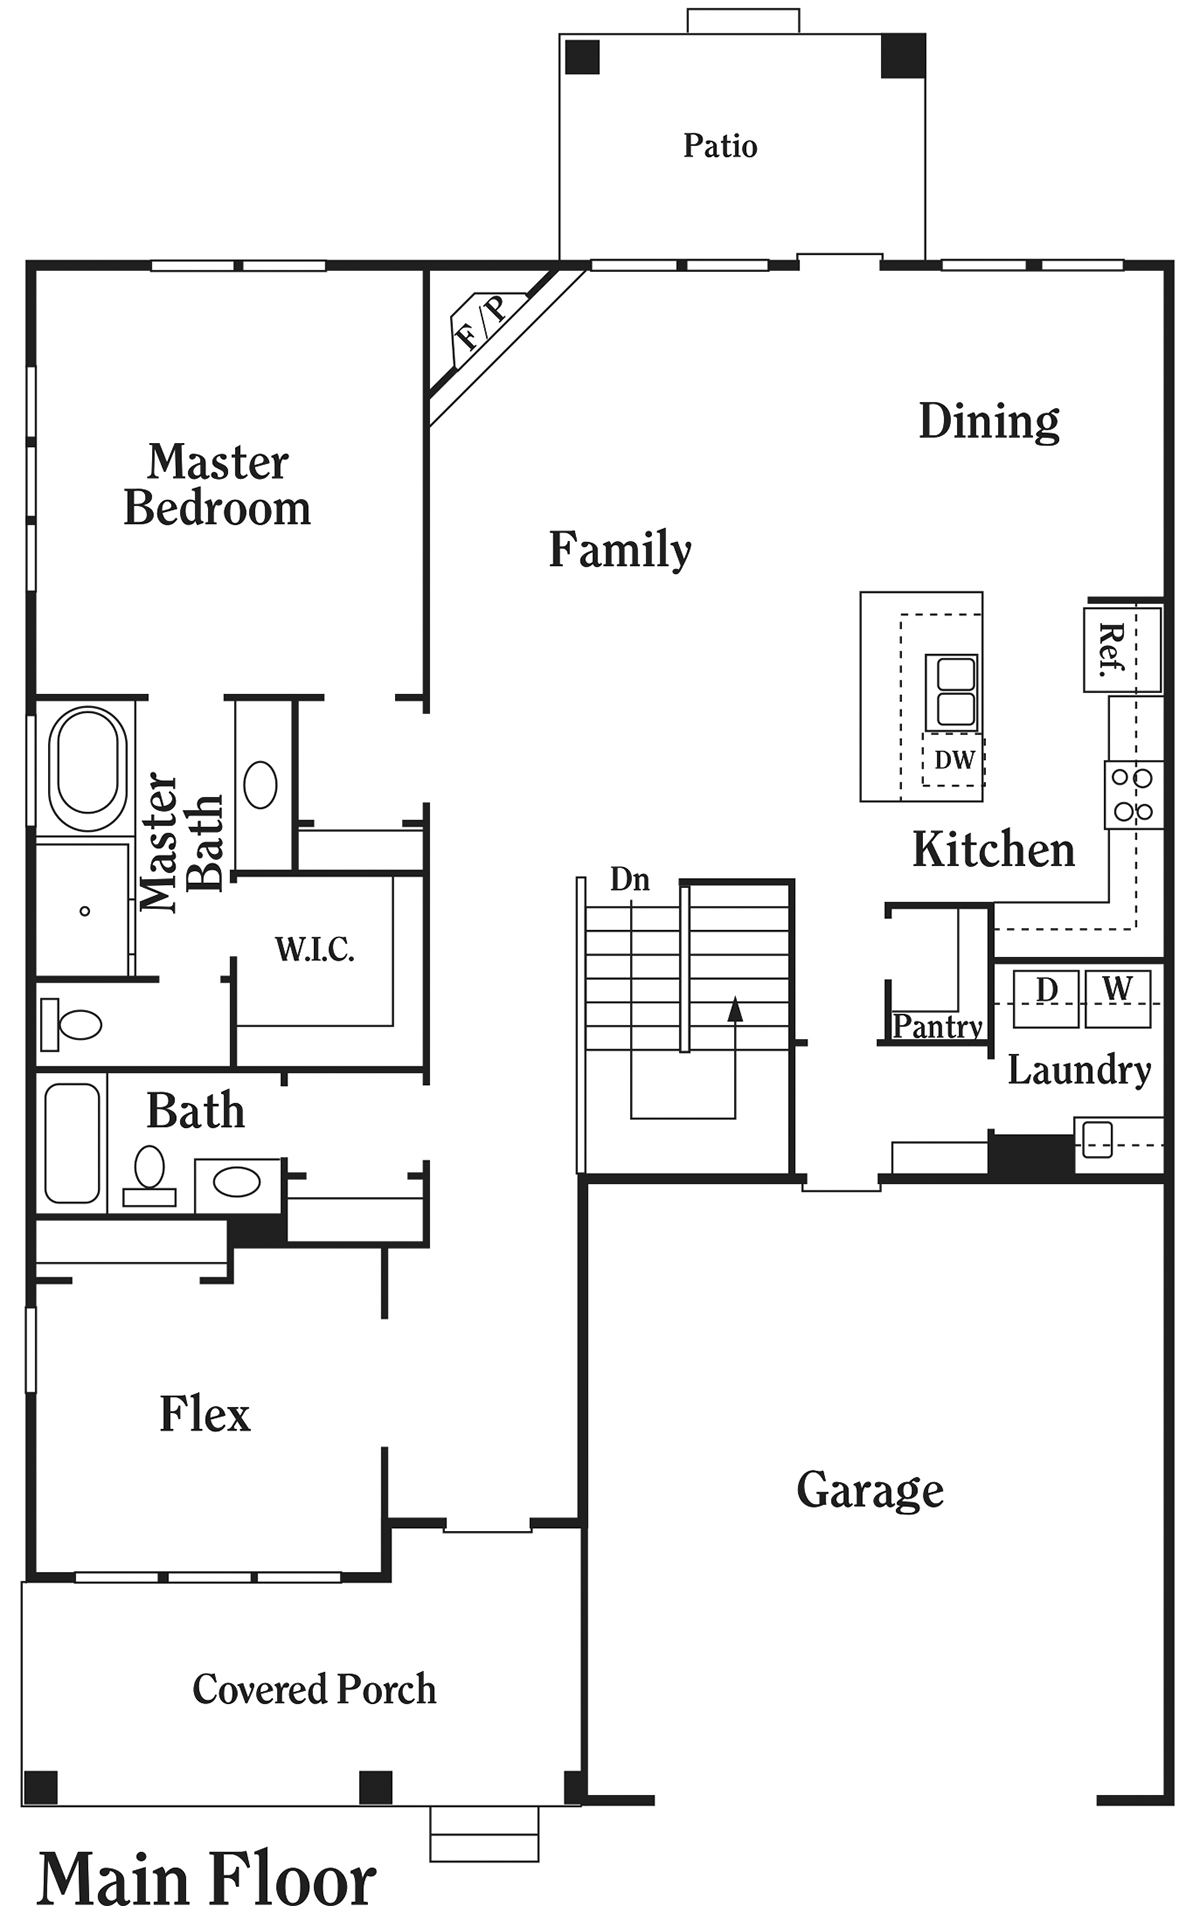 click on floor plan for larger image - Townehome Holmes Homes Utah Floor Plans